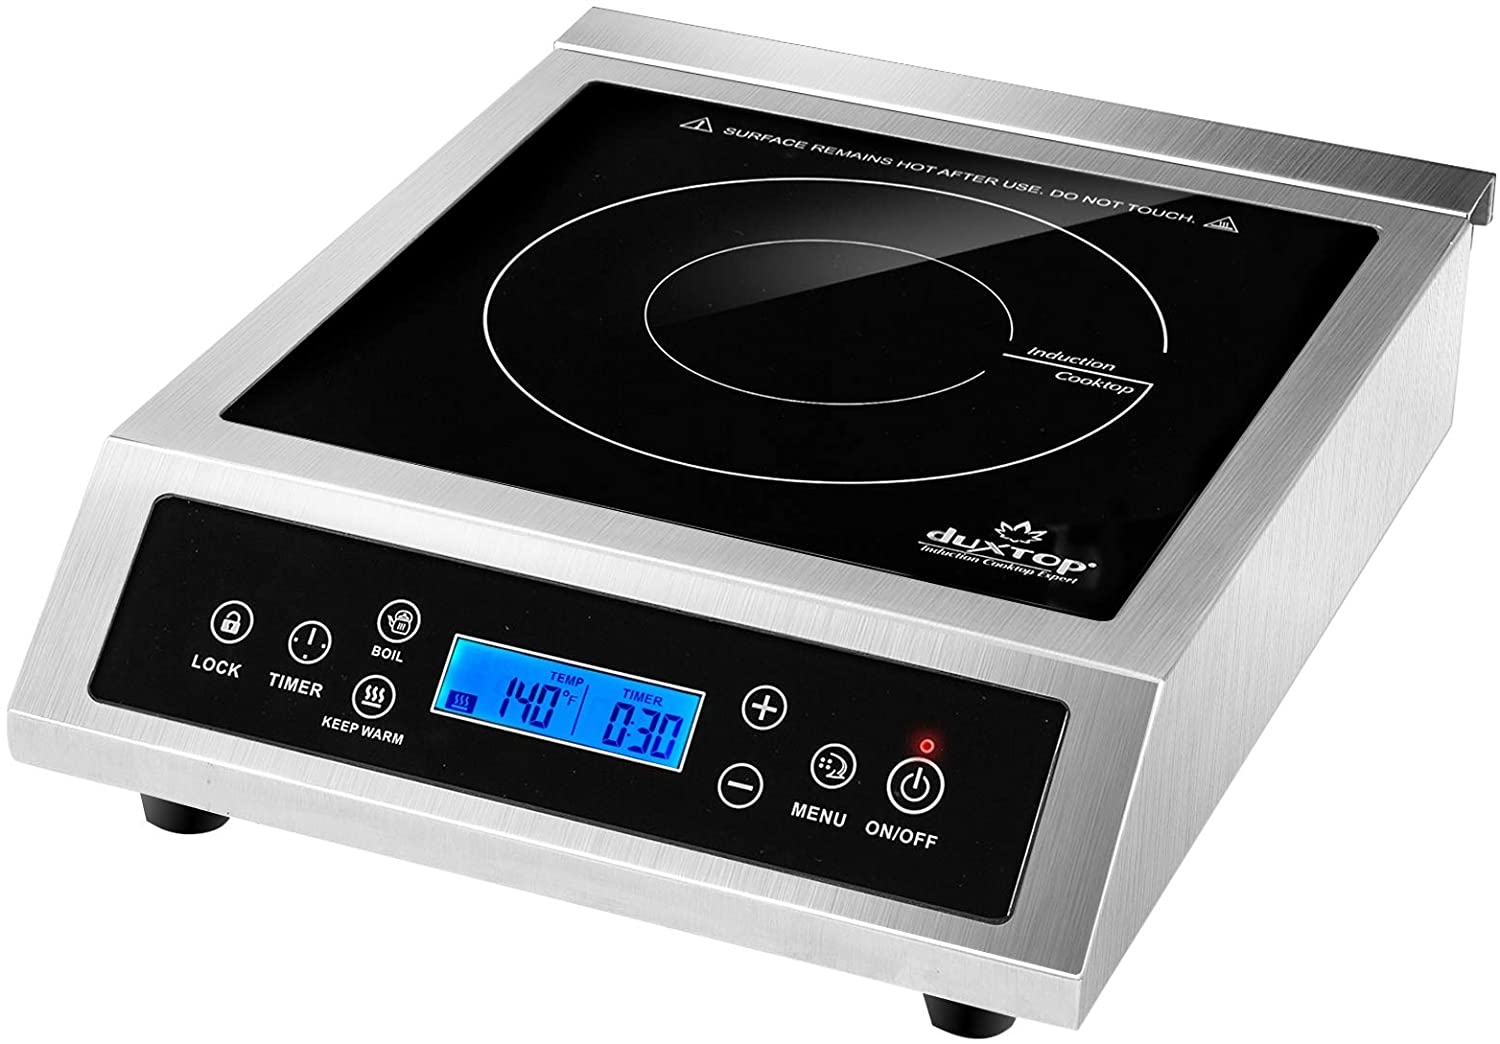 Duxtop Professional Portable Induction Cooktop, Commercial Range Countertop Burner, 1800 Watts Induction Burner with Sensor Touch and LCD Screen, P961LS/BT-C35-D